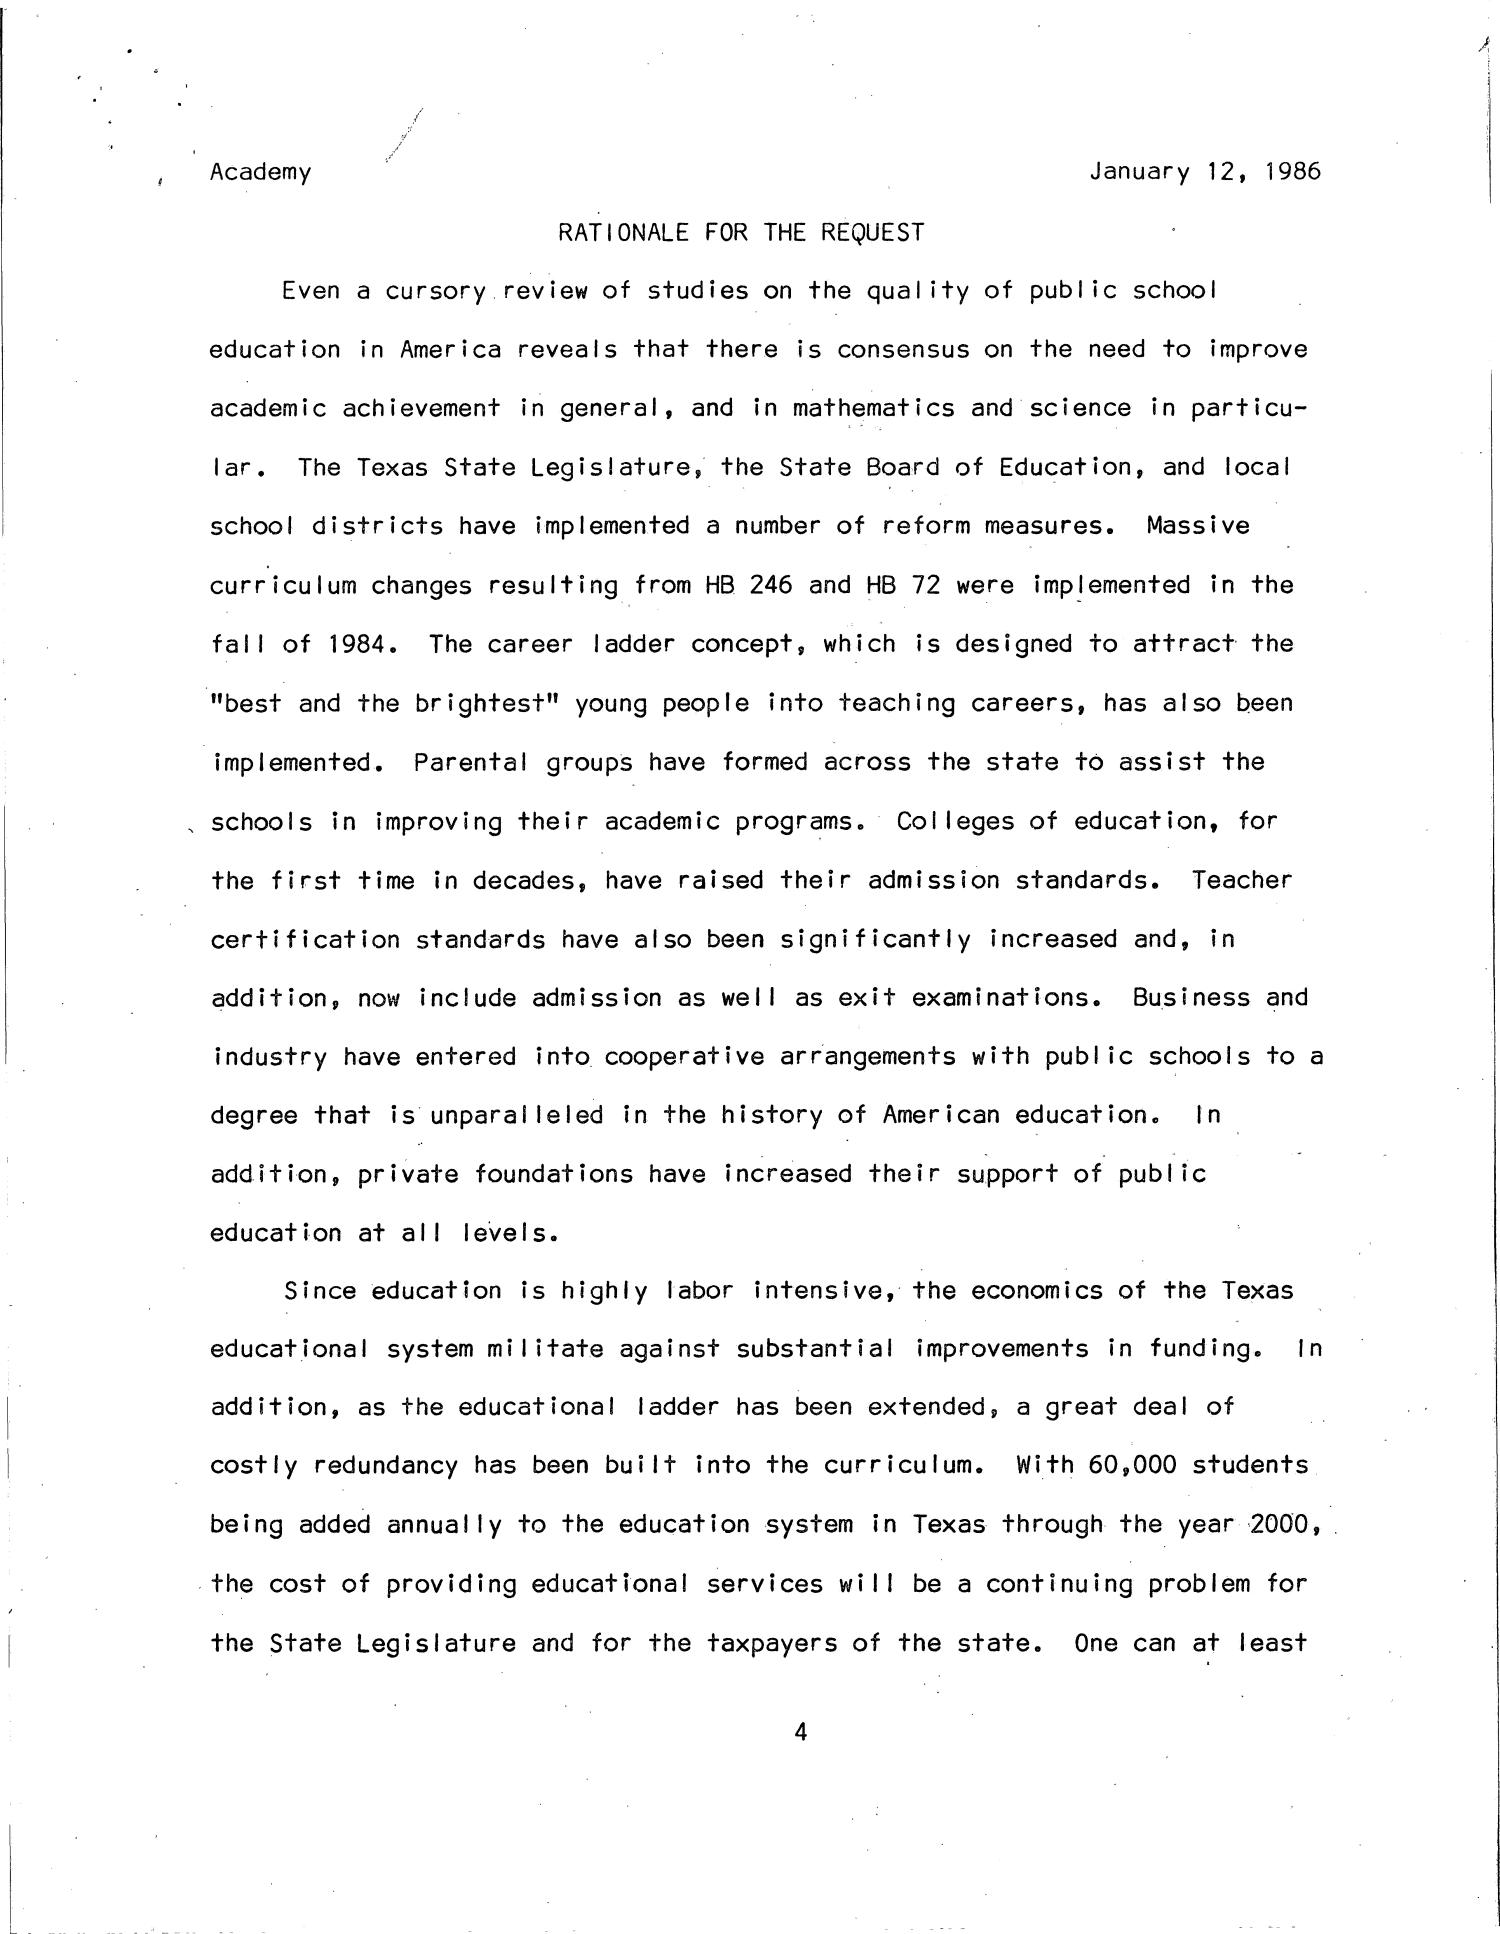 a concept paper on the establishment of the texas academy of